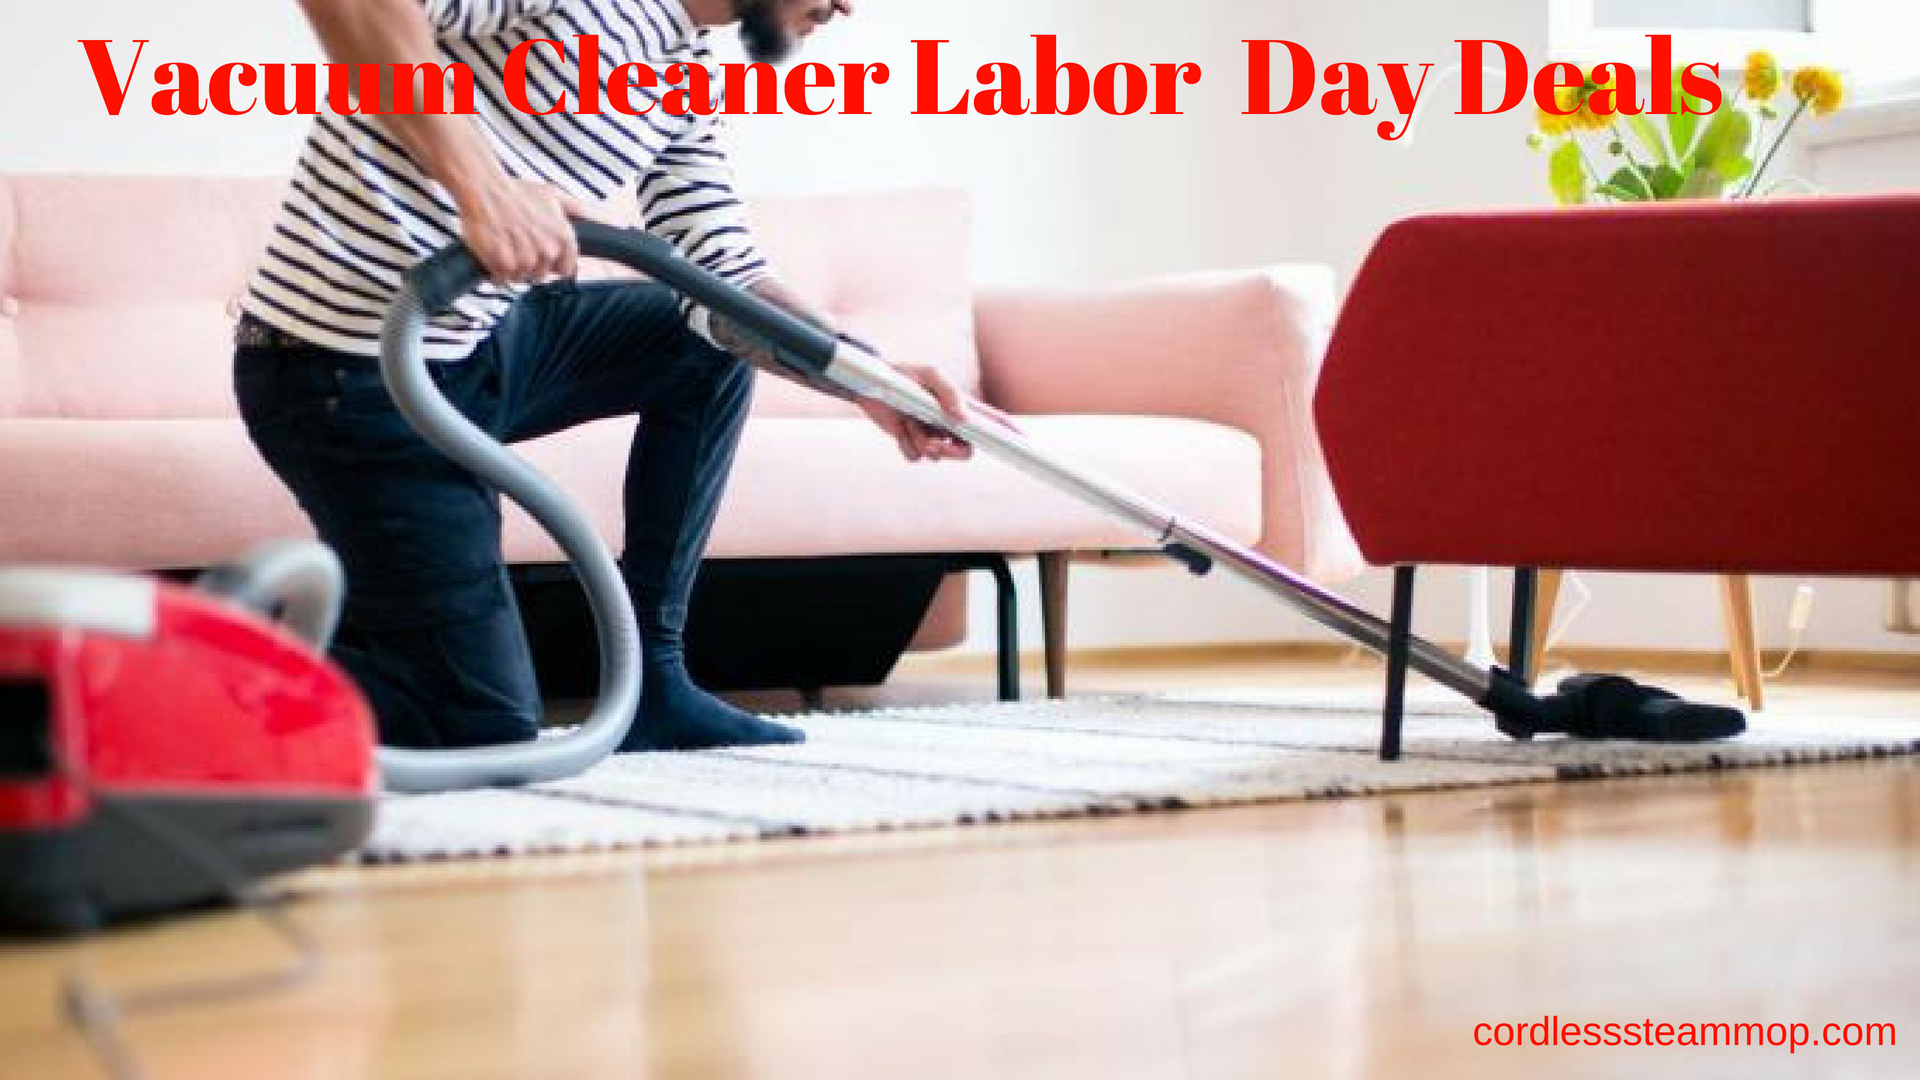 Vacuum Cleaner Labor Day Deals 2021